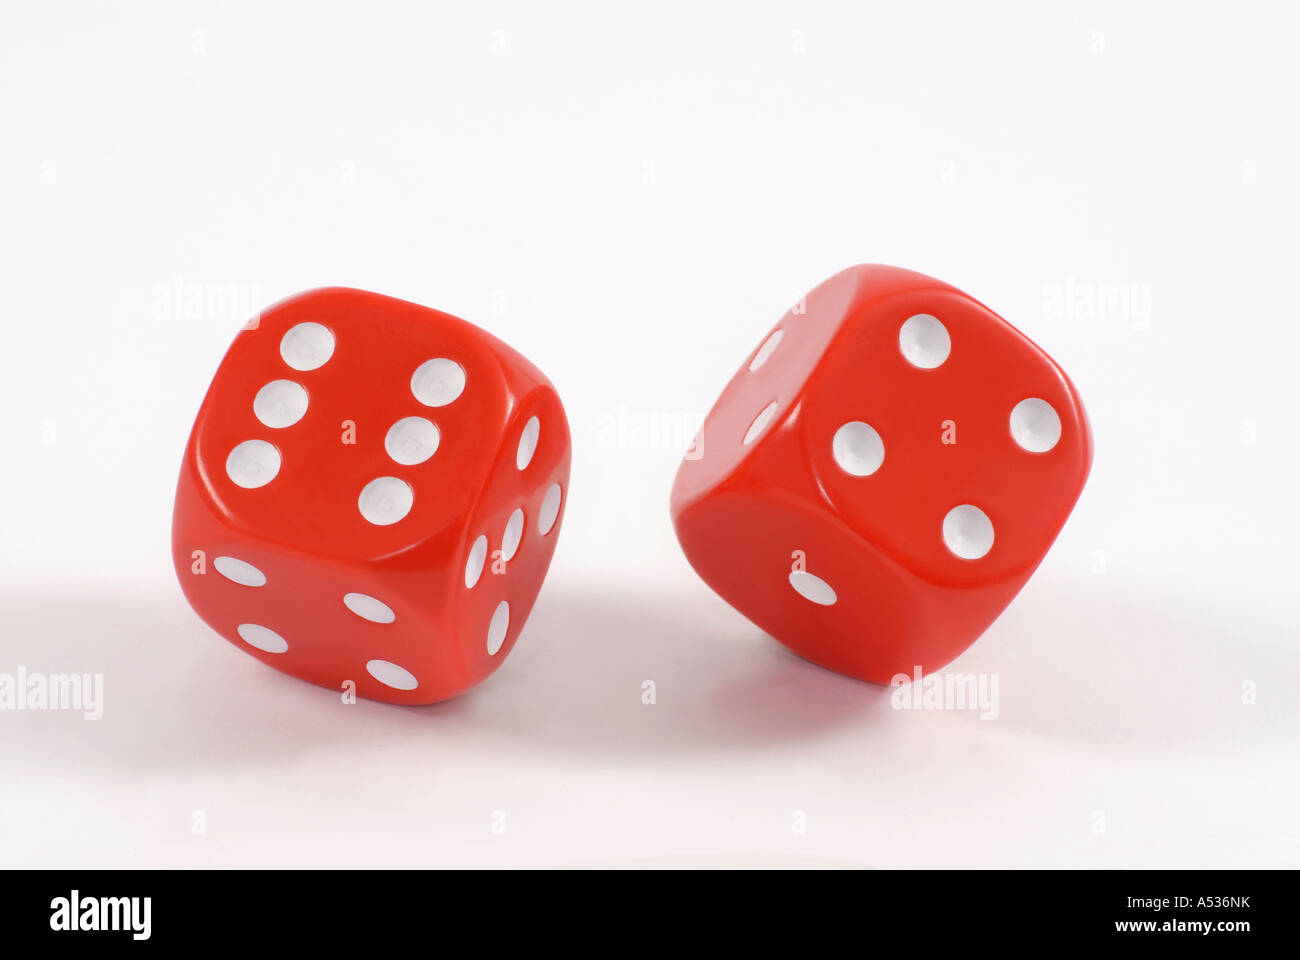 Pair of red dice - Stock Image